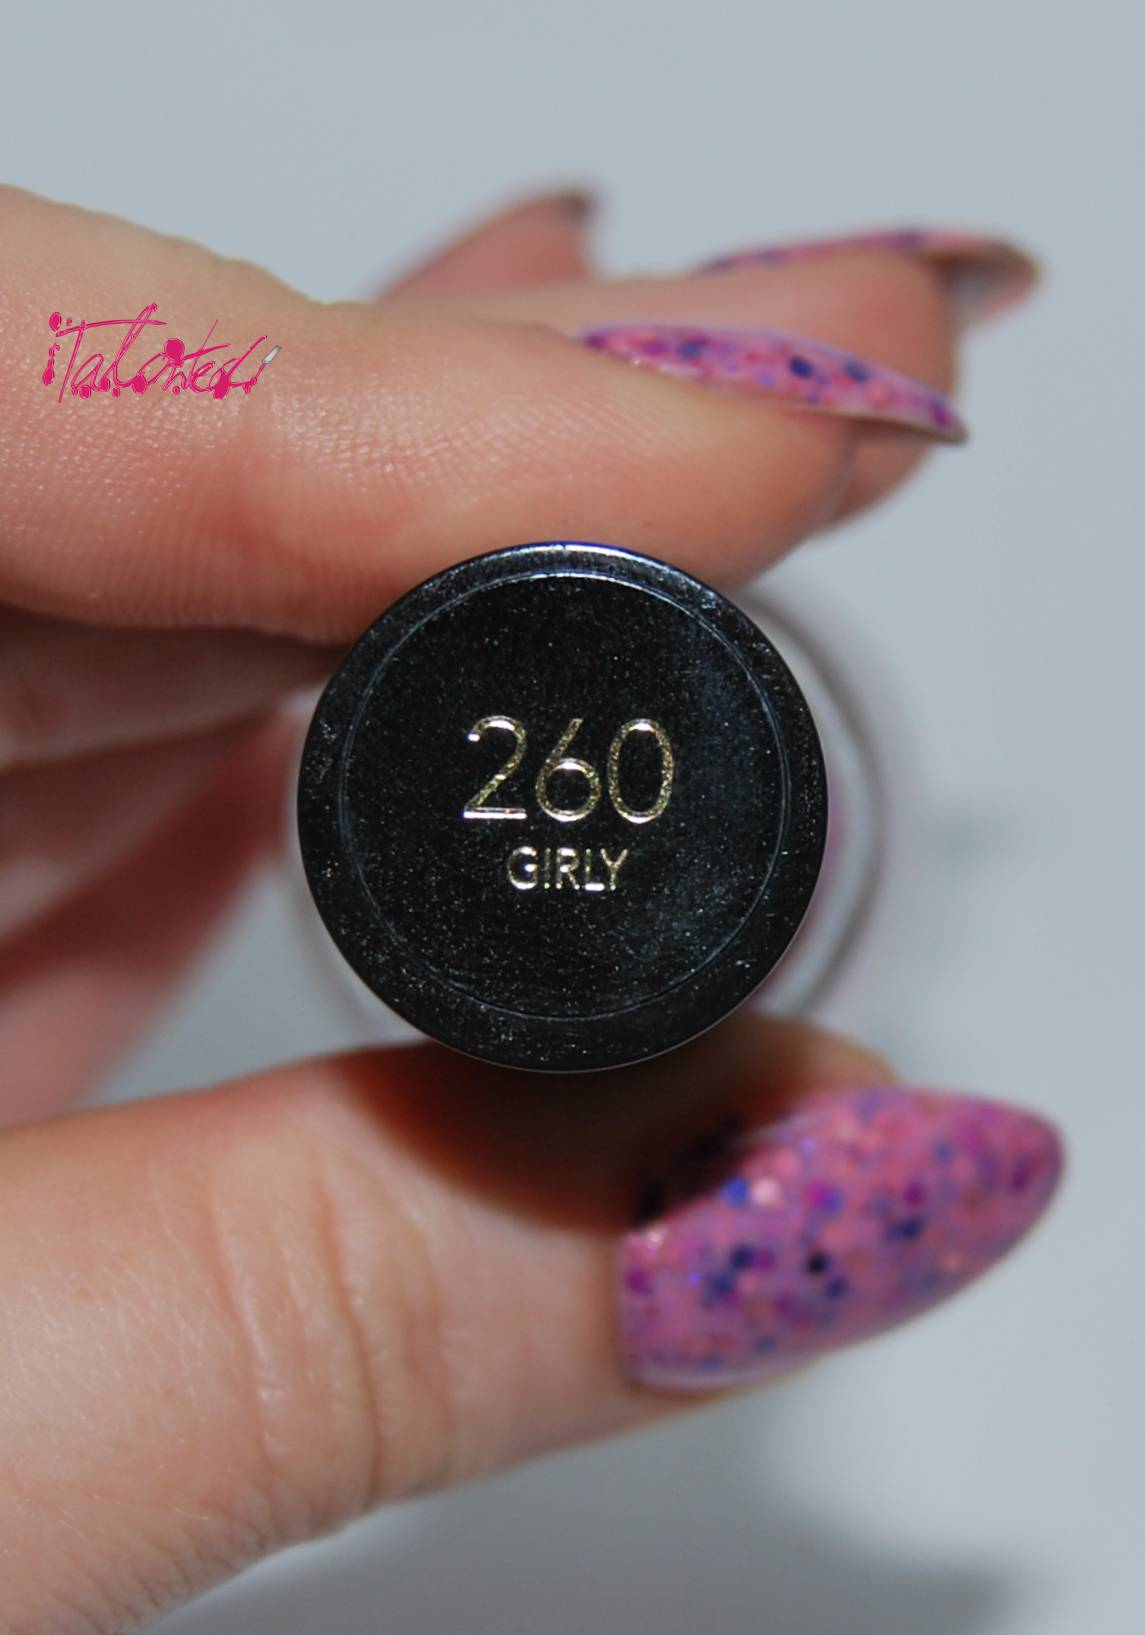 Revlon 260 Girly Review